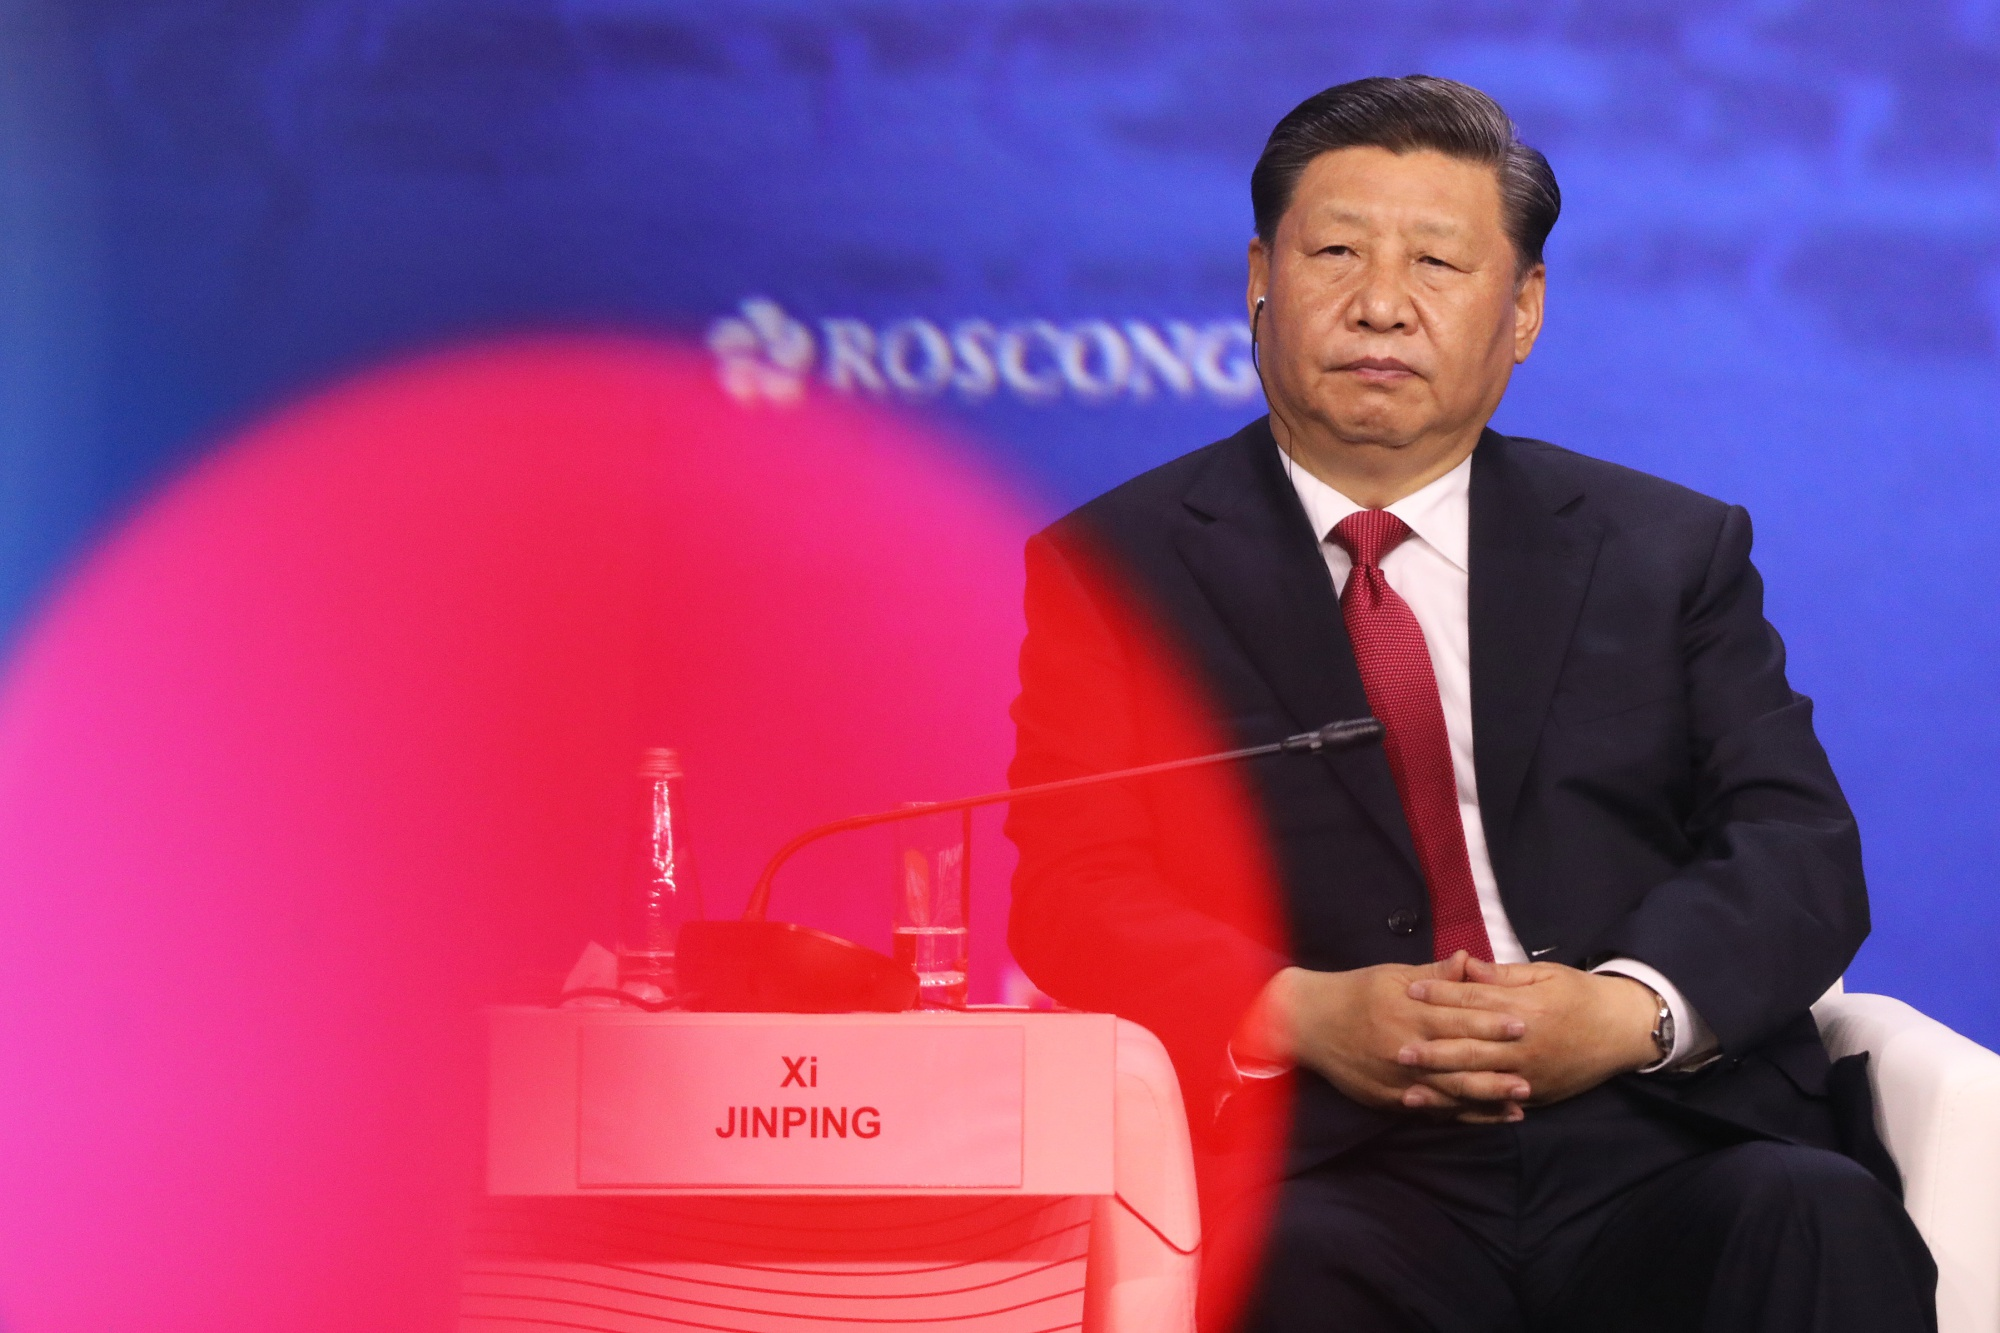 Chinese Official Touts Blockchain After Xi Praises Technology